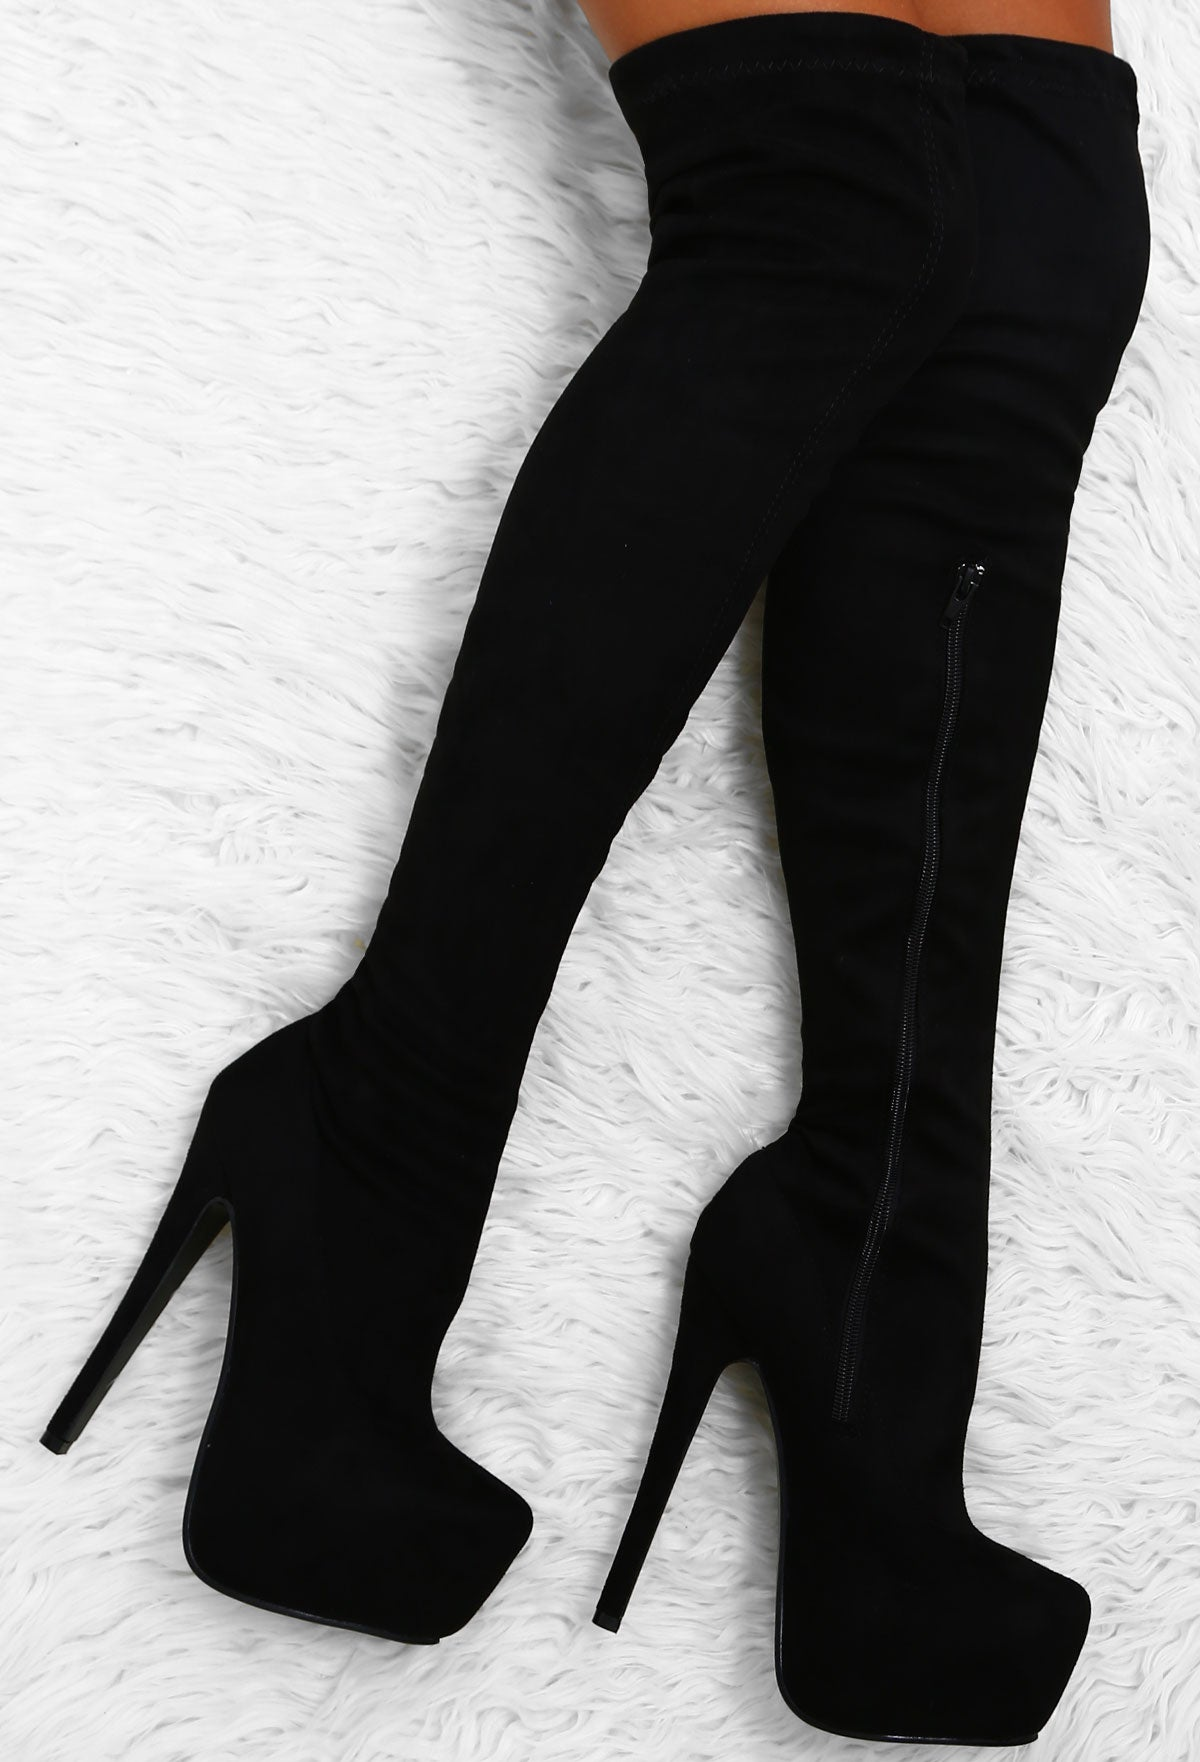 516b11e5d7a Take The Risk Black Faux Suede Over The Knee Platform Boots – Pink ...